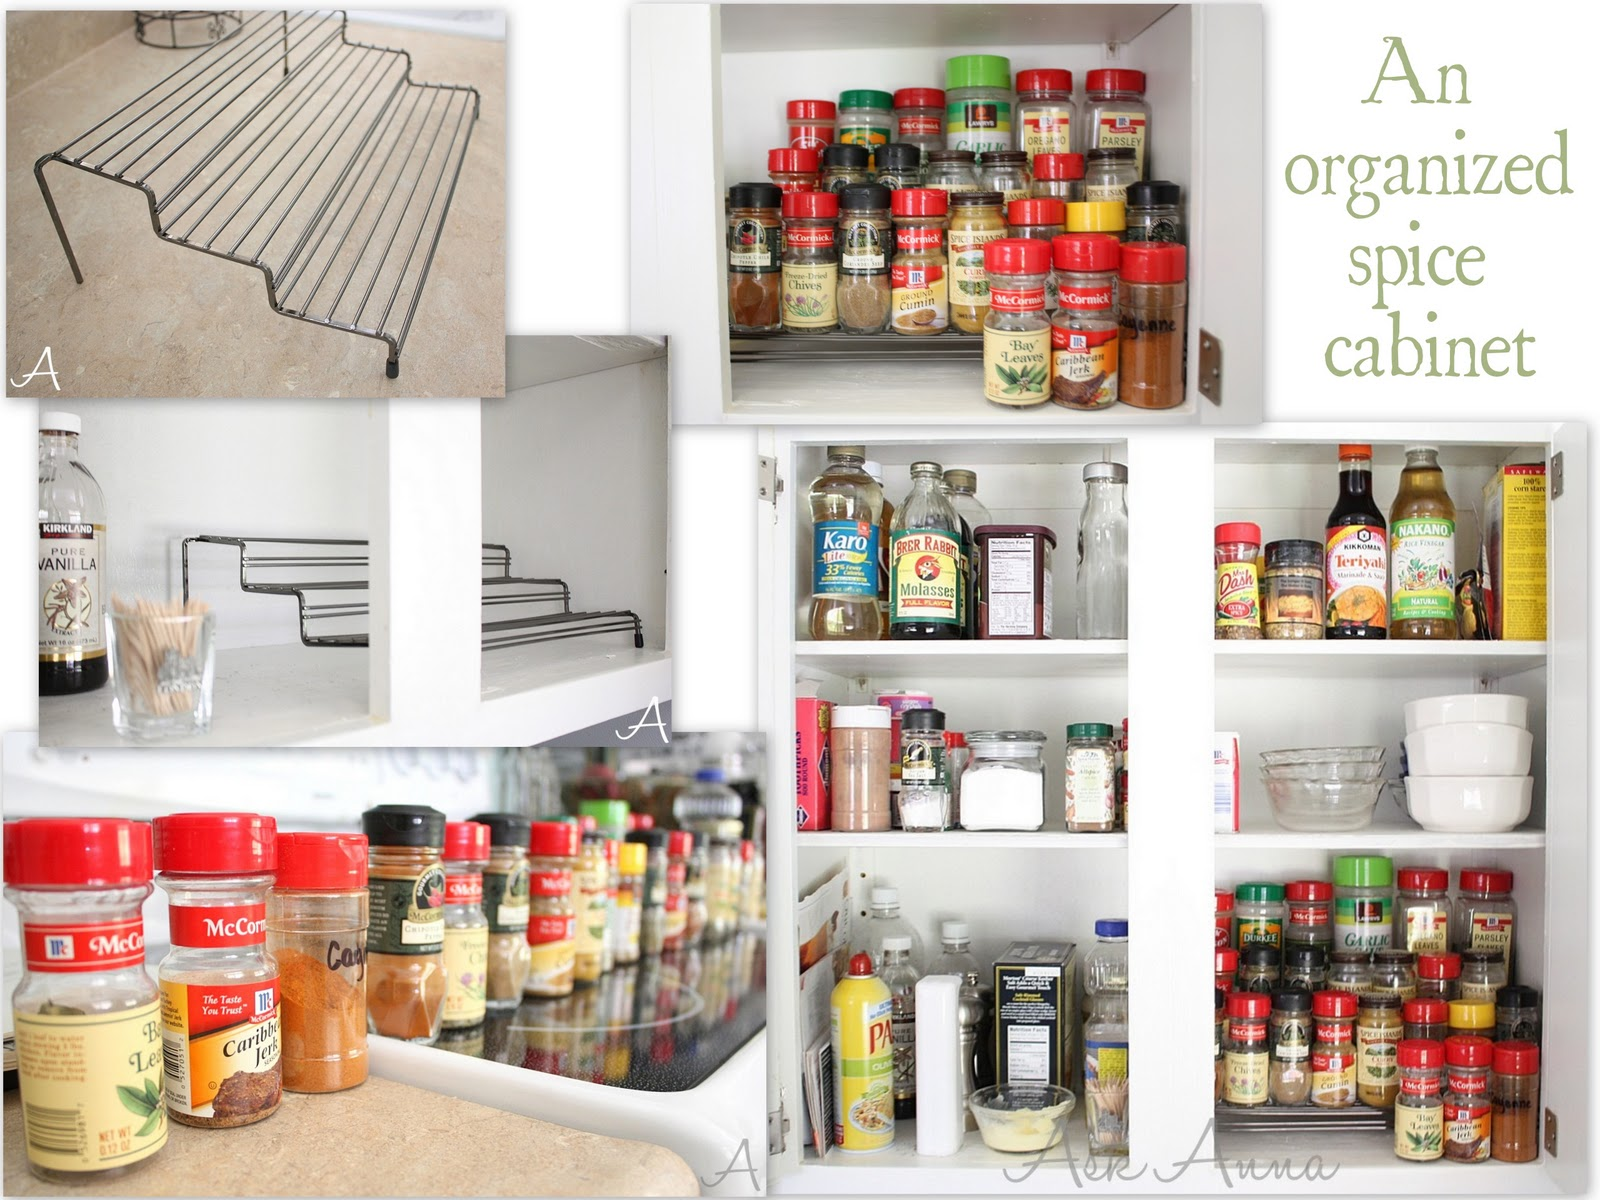 Organizing Kitchen Cabinets Ask Anna - Best way to organize kitchen cabinets